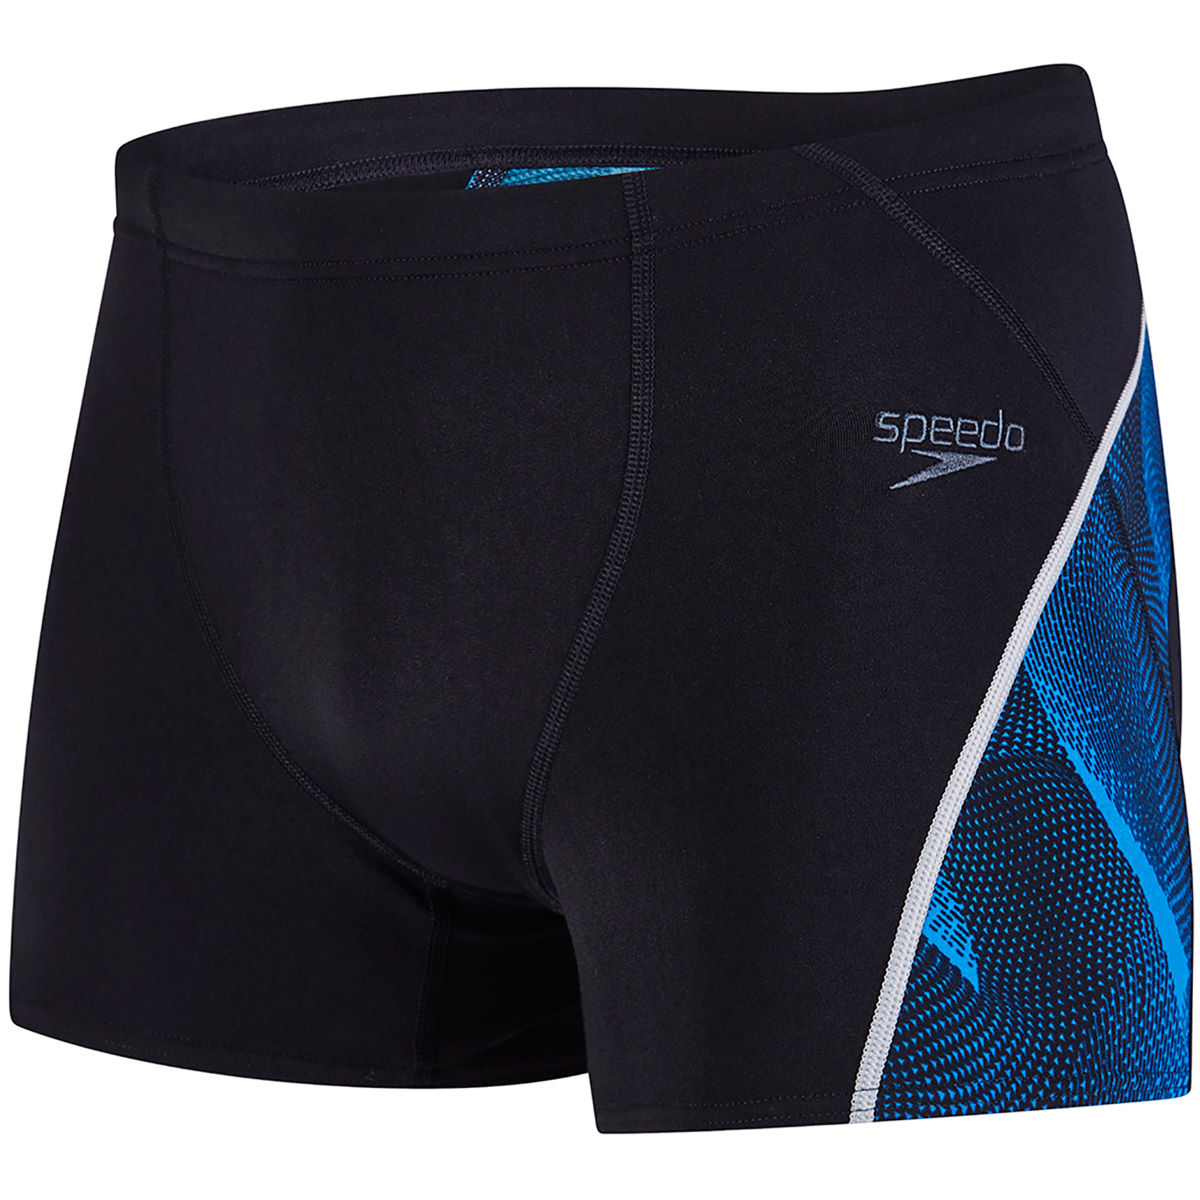 Boxer de bain Speedo Fit Graphic - 40 Black/Danube